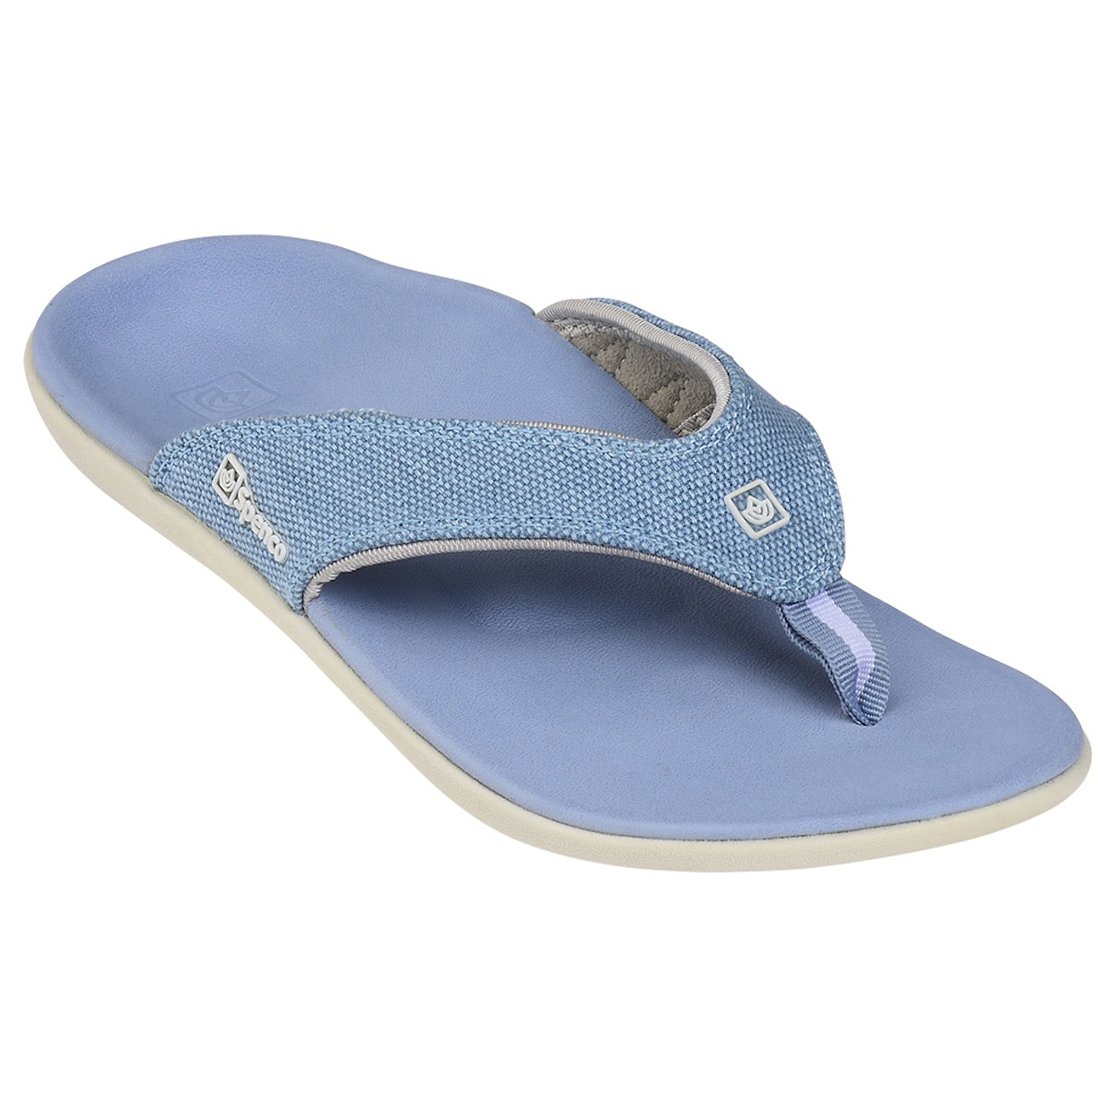 Women's yumi sandals